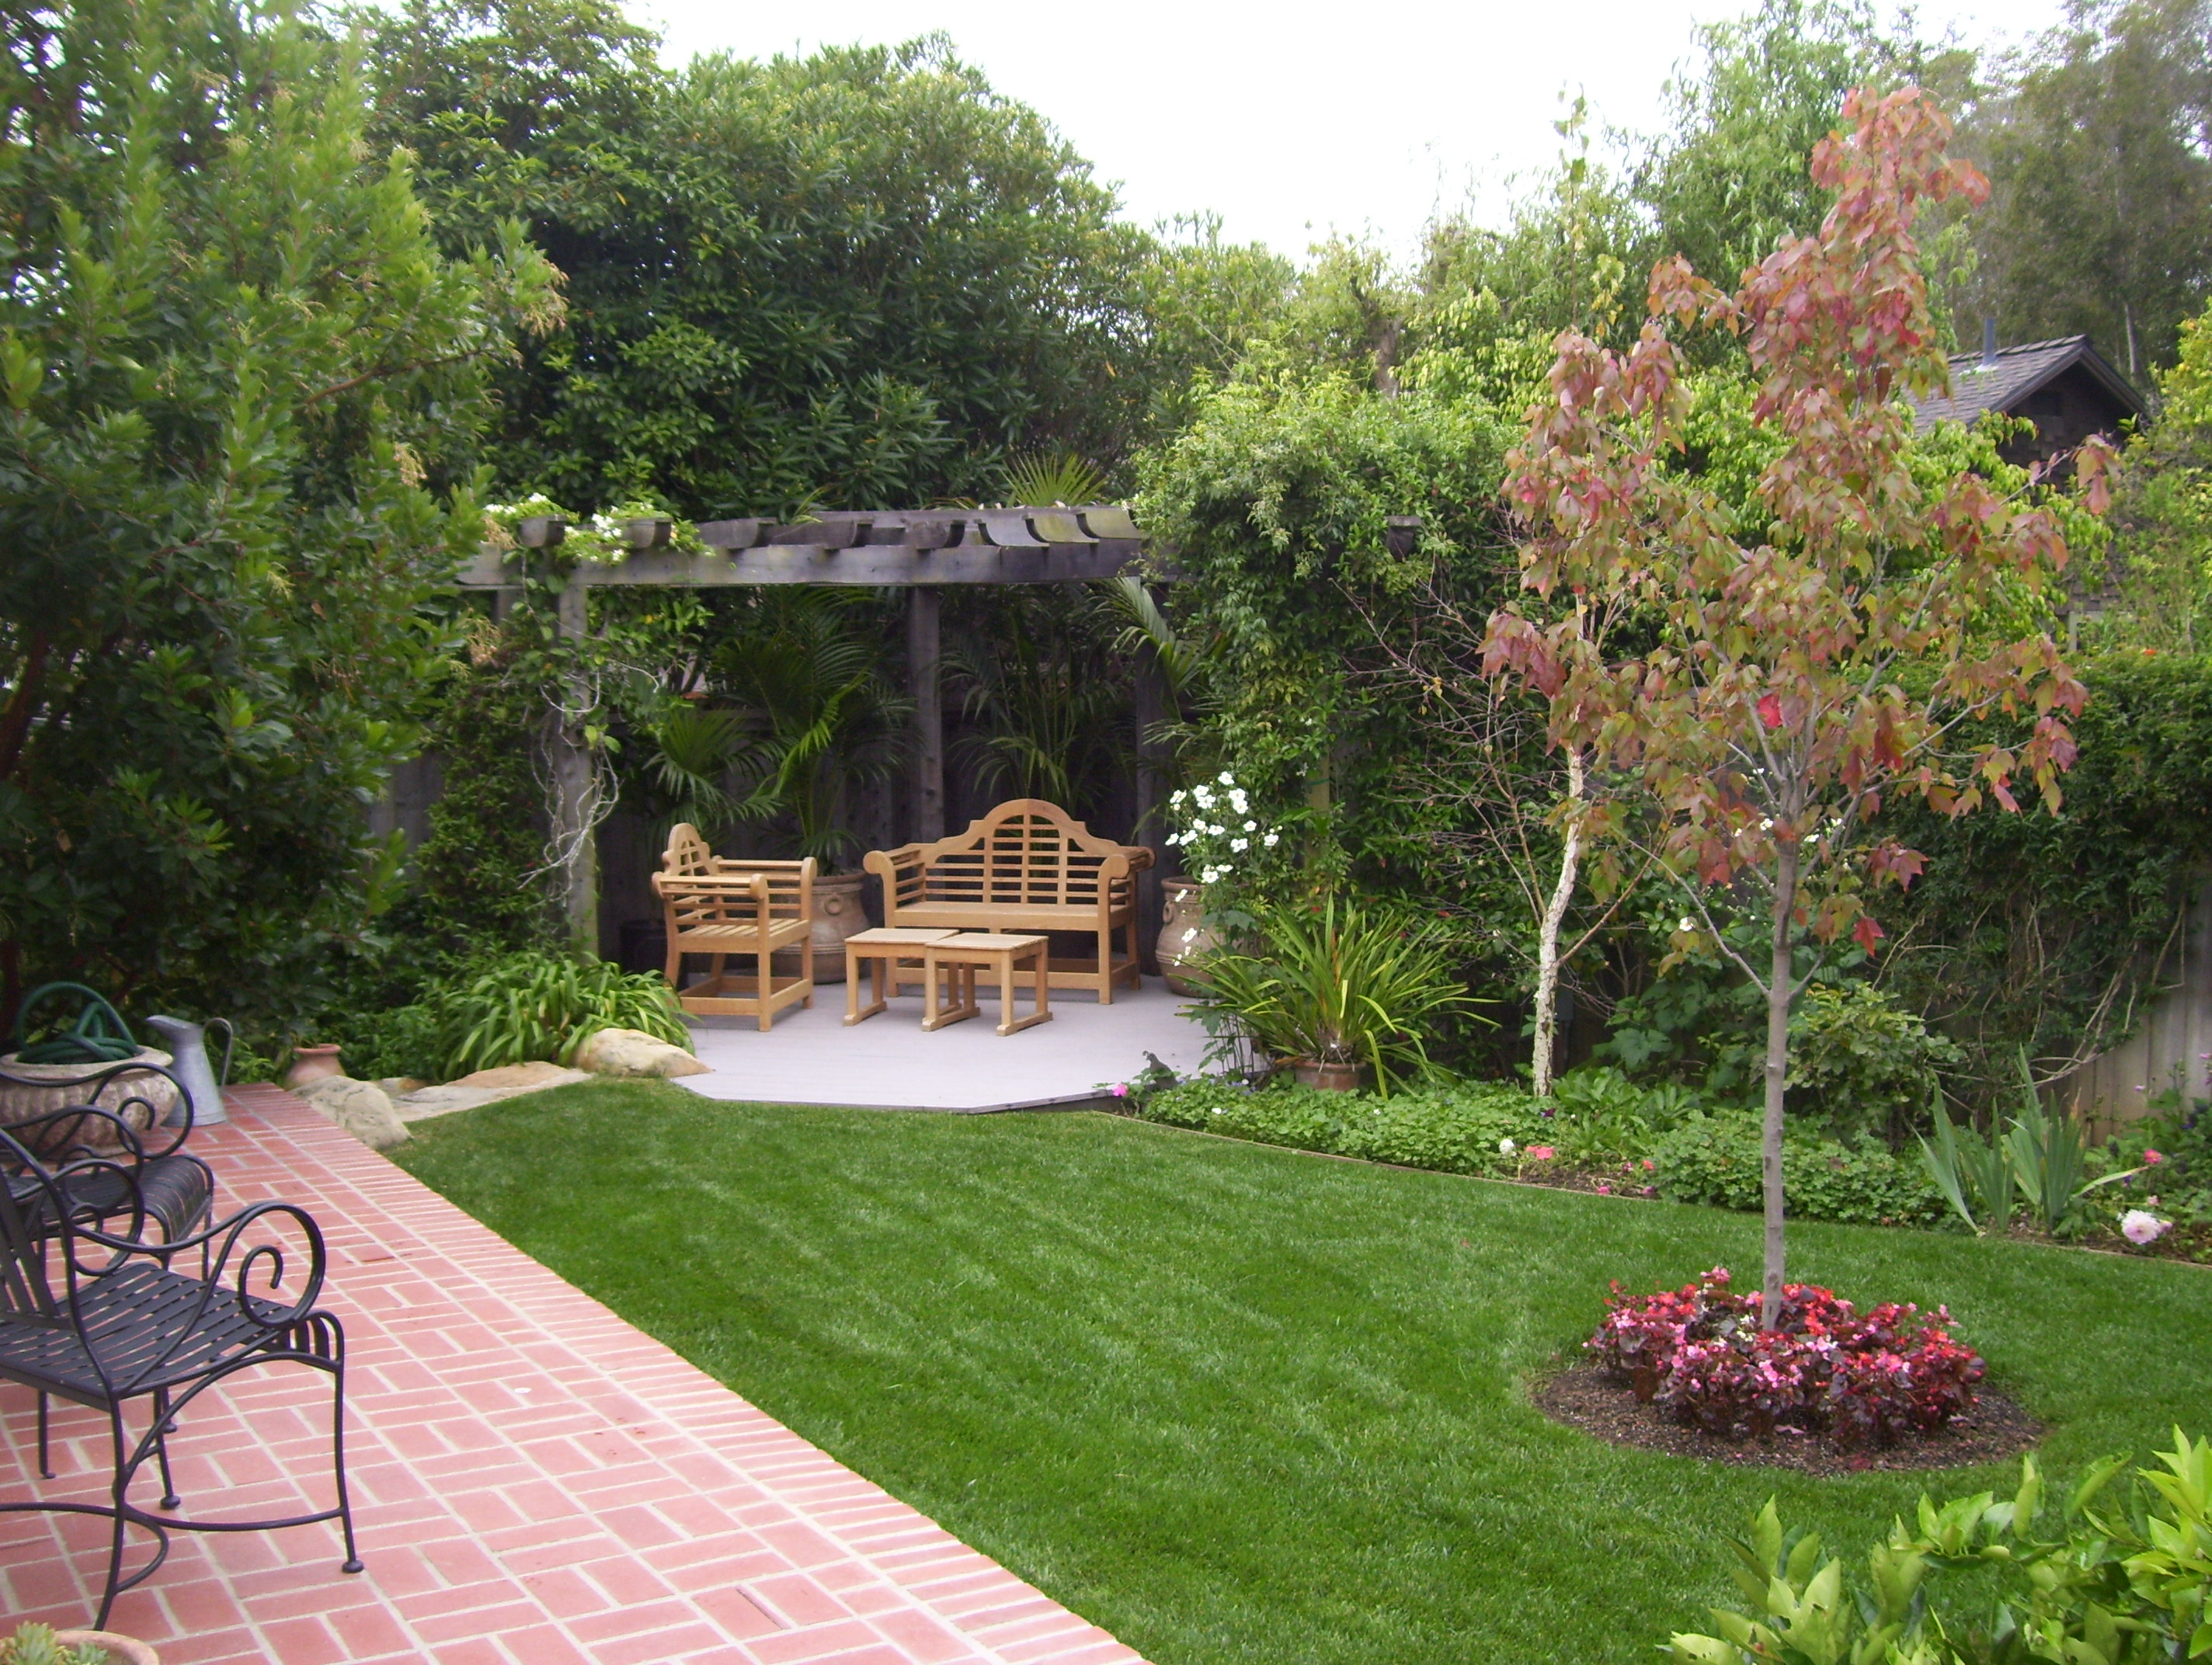 Backyard landscaping ideas santa barbara down to earth for Outside ideas landscaping